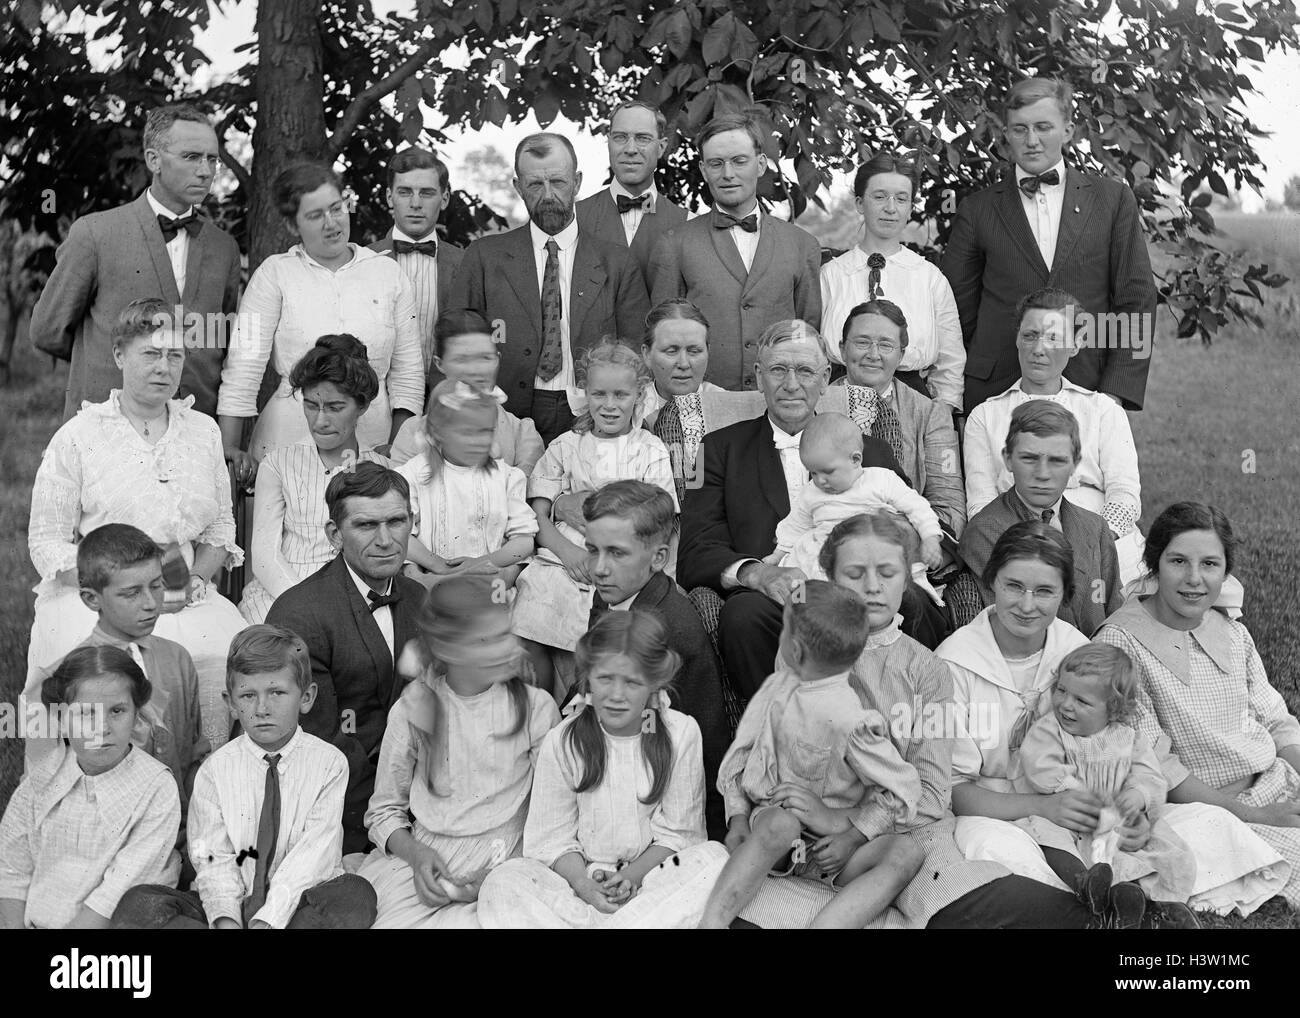 1900s 1915 GROUP PORTRAIT EXTENDED FAMILY THREE GENERATIONS OUTDOORS ON LAWN LOOKING AT CAMERA - Stock Image